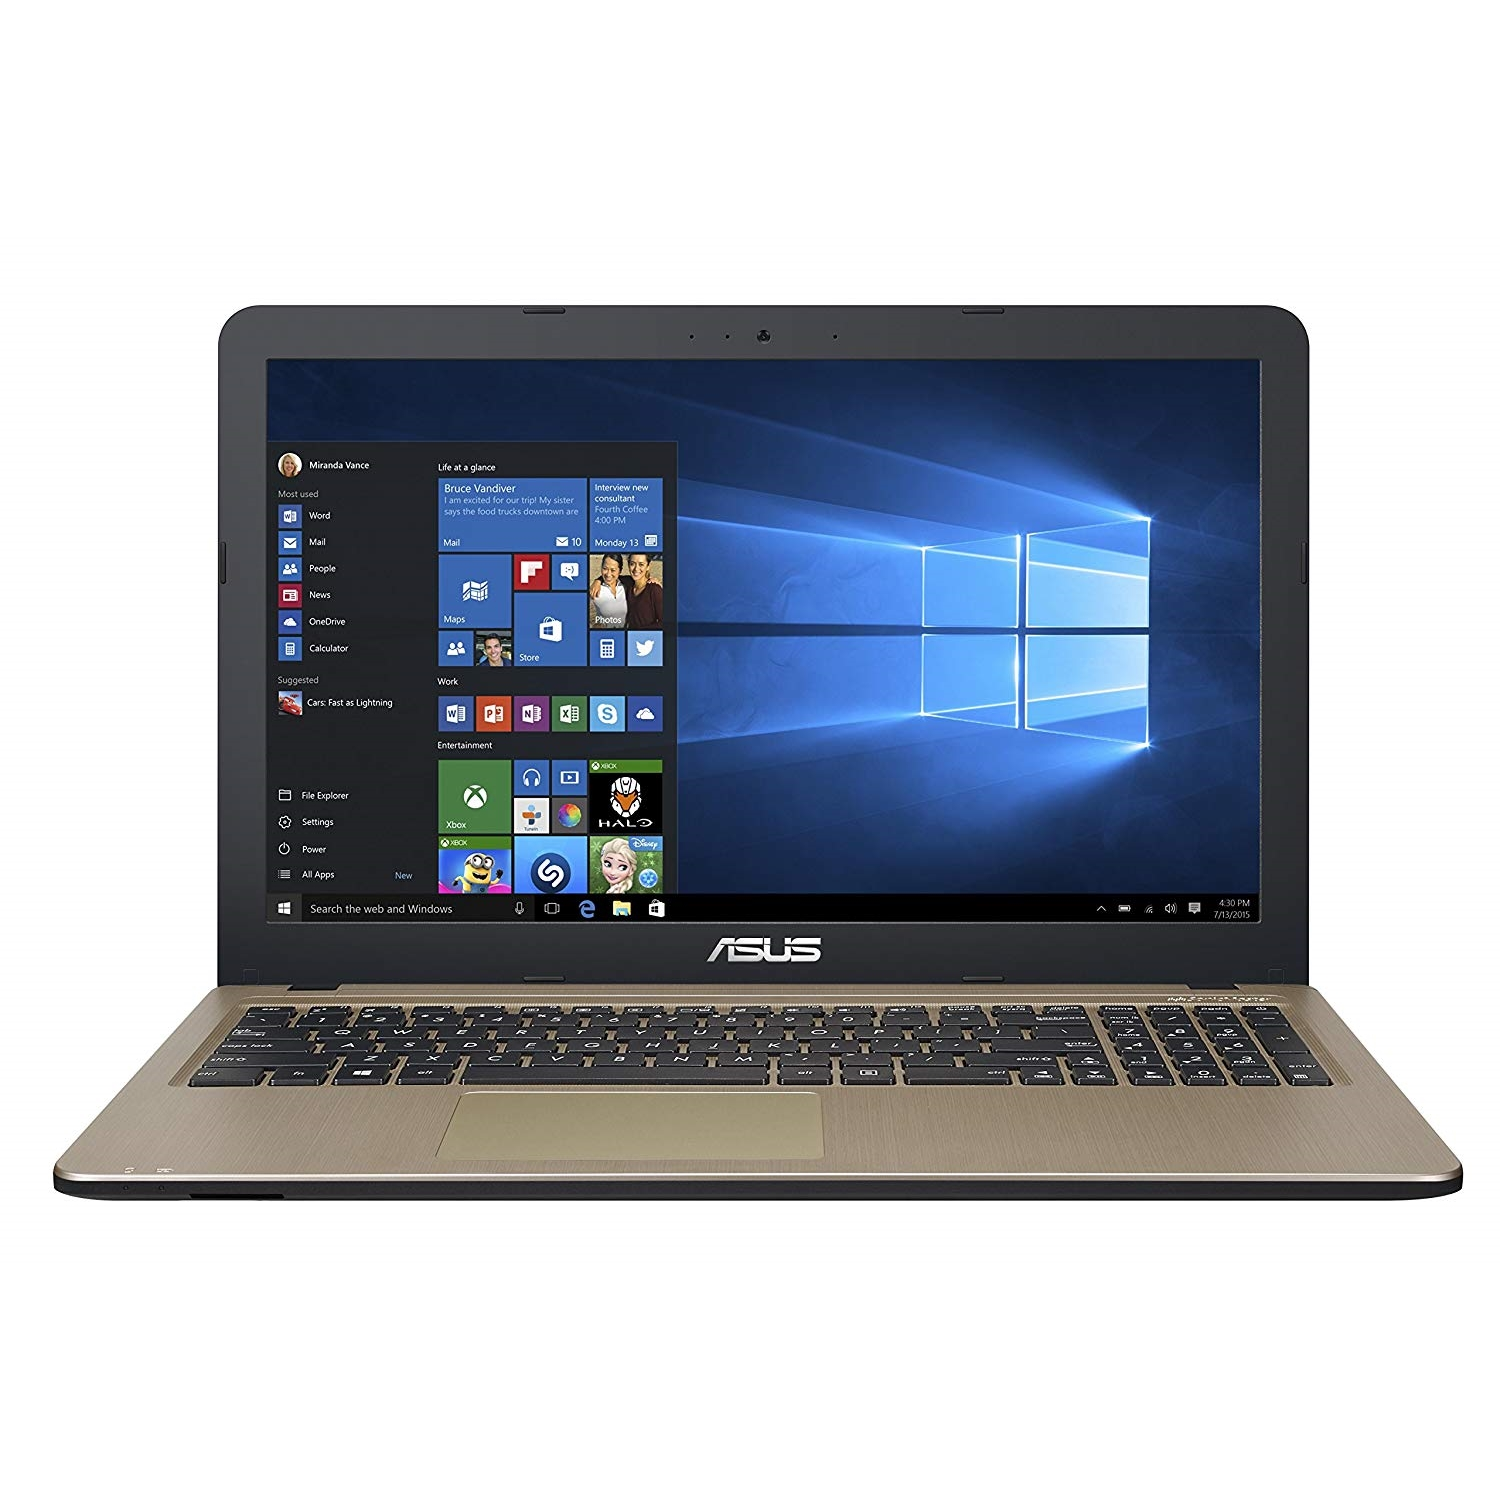 "ASUS X540MA-GO072 N4000 4GB 500GB O/B VGA 15.6"" FREEDOS NOTEBOOK"